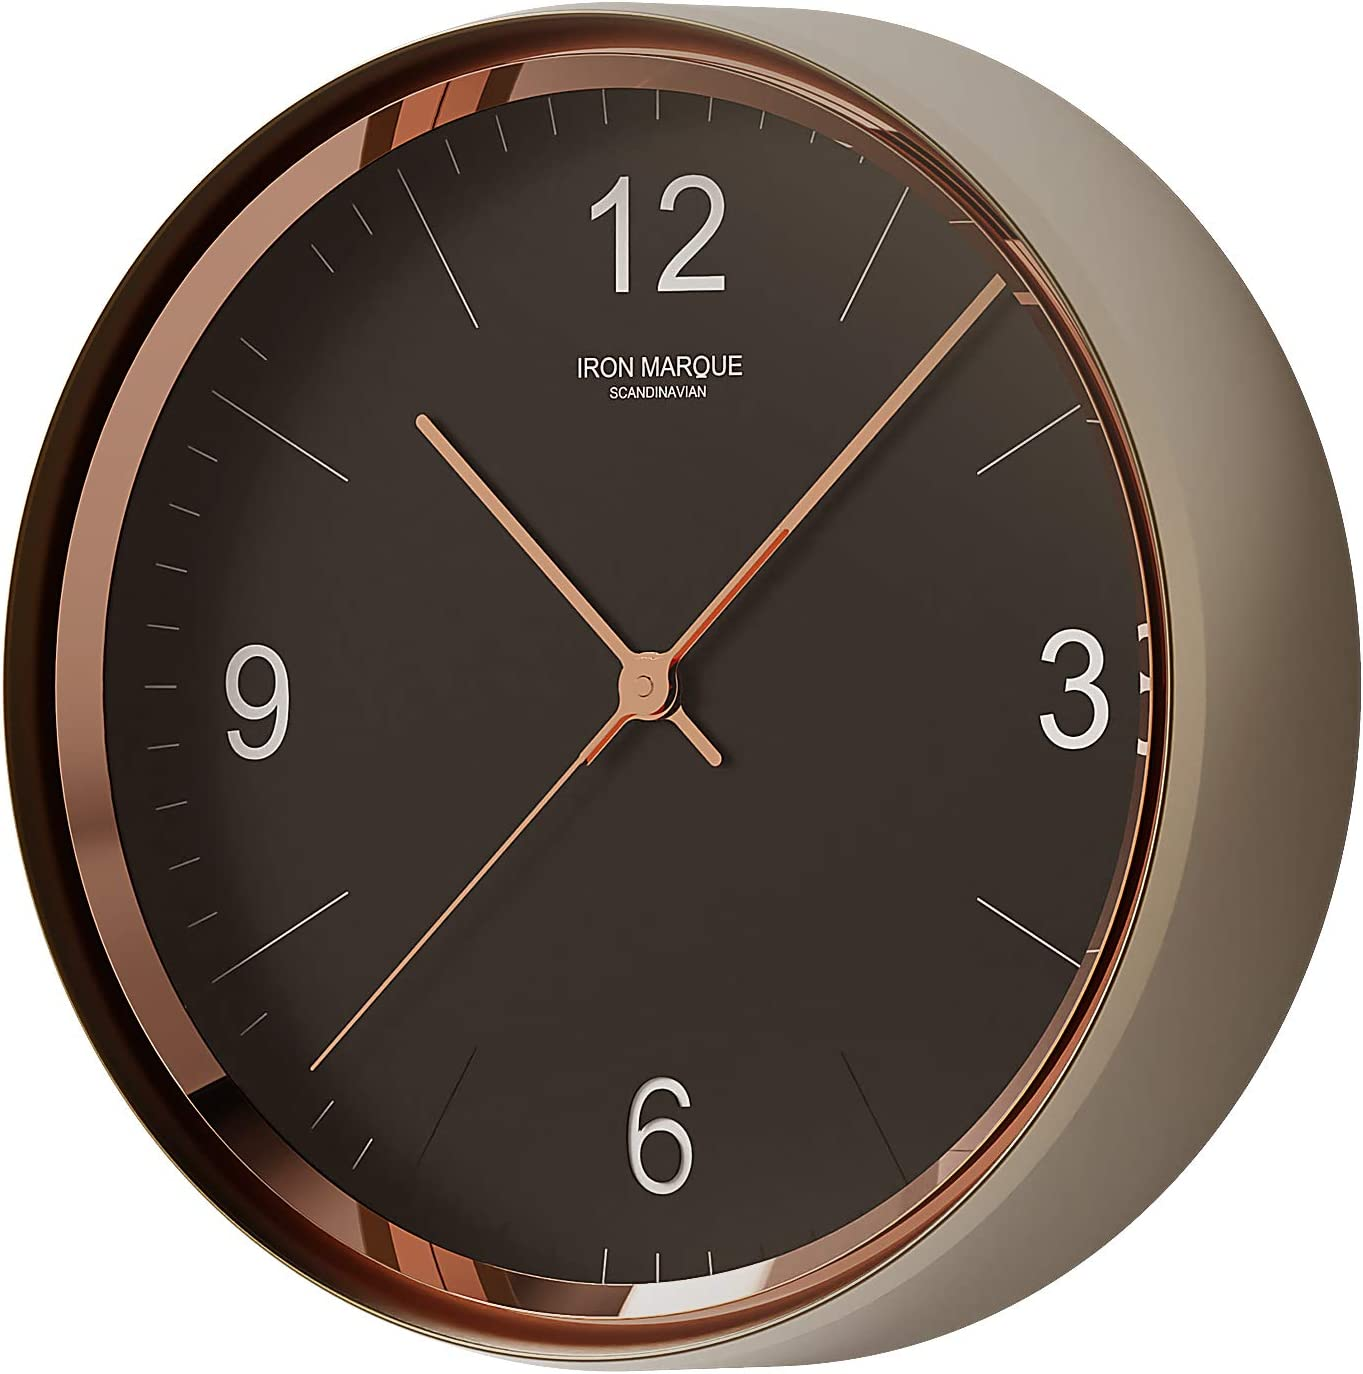 Iron Marque Silent Décor Wall Clock Battery Operated Non Ticking Modern Elegant Quiet Clock for Home Office (Black, 9 inch)